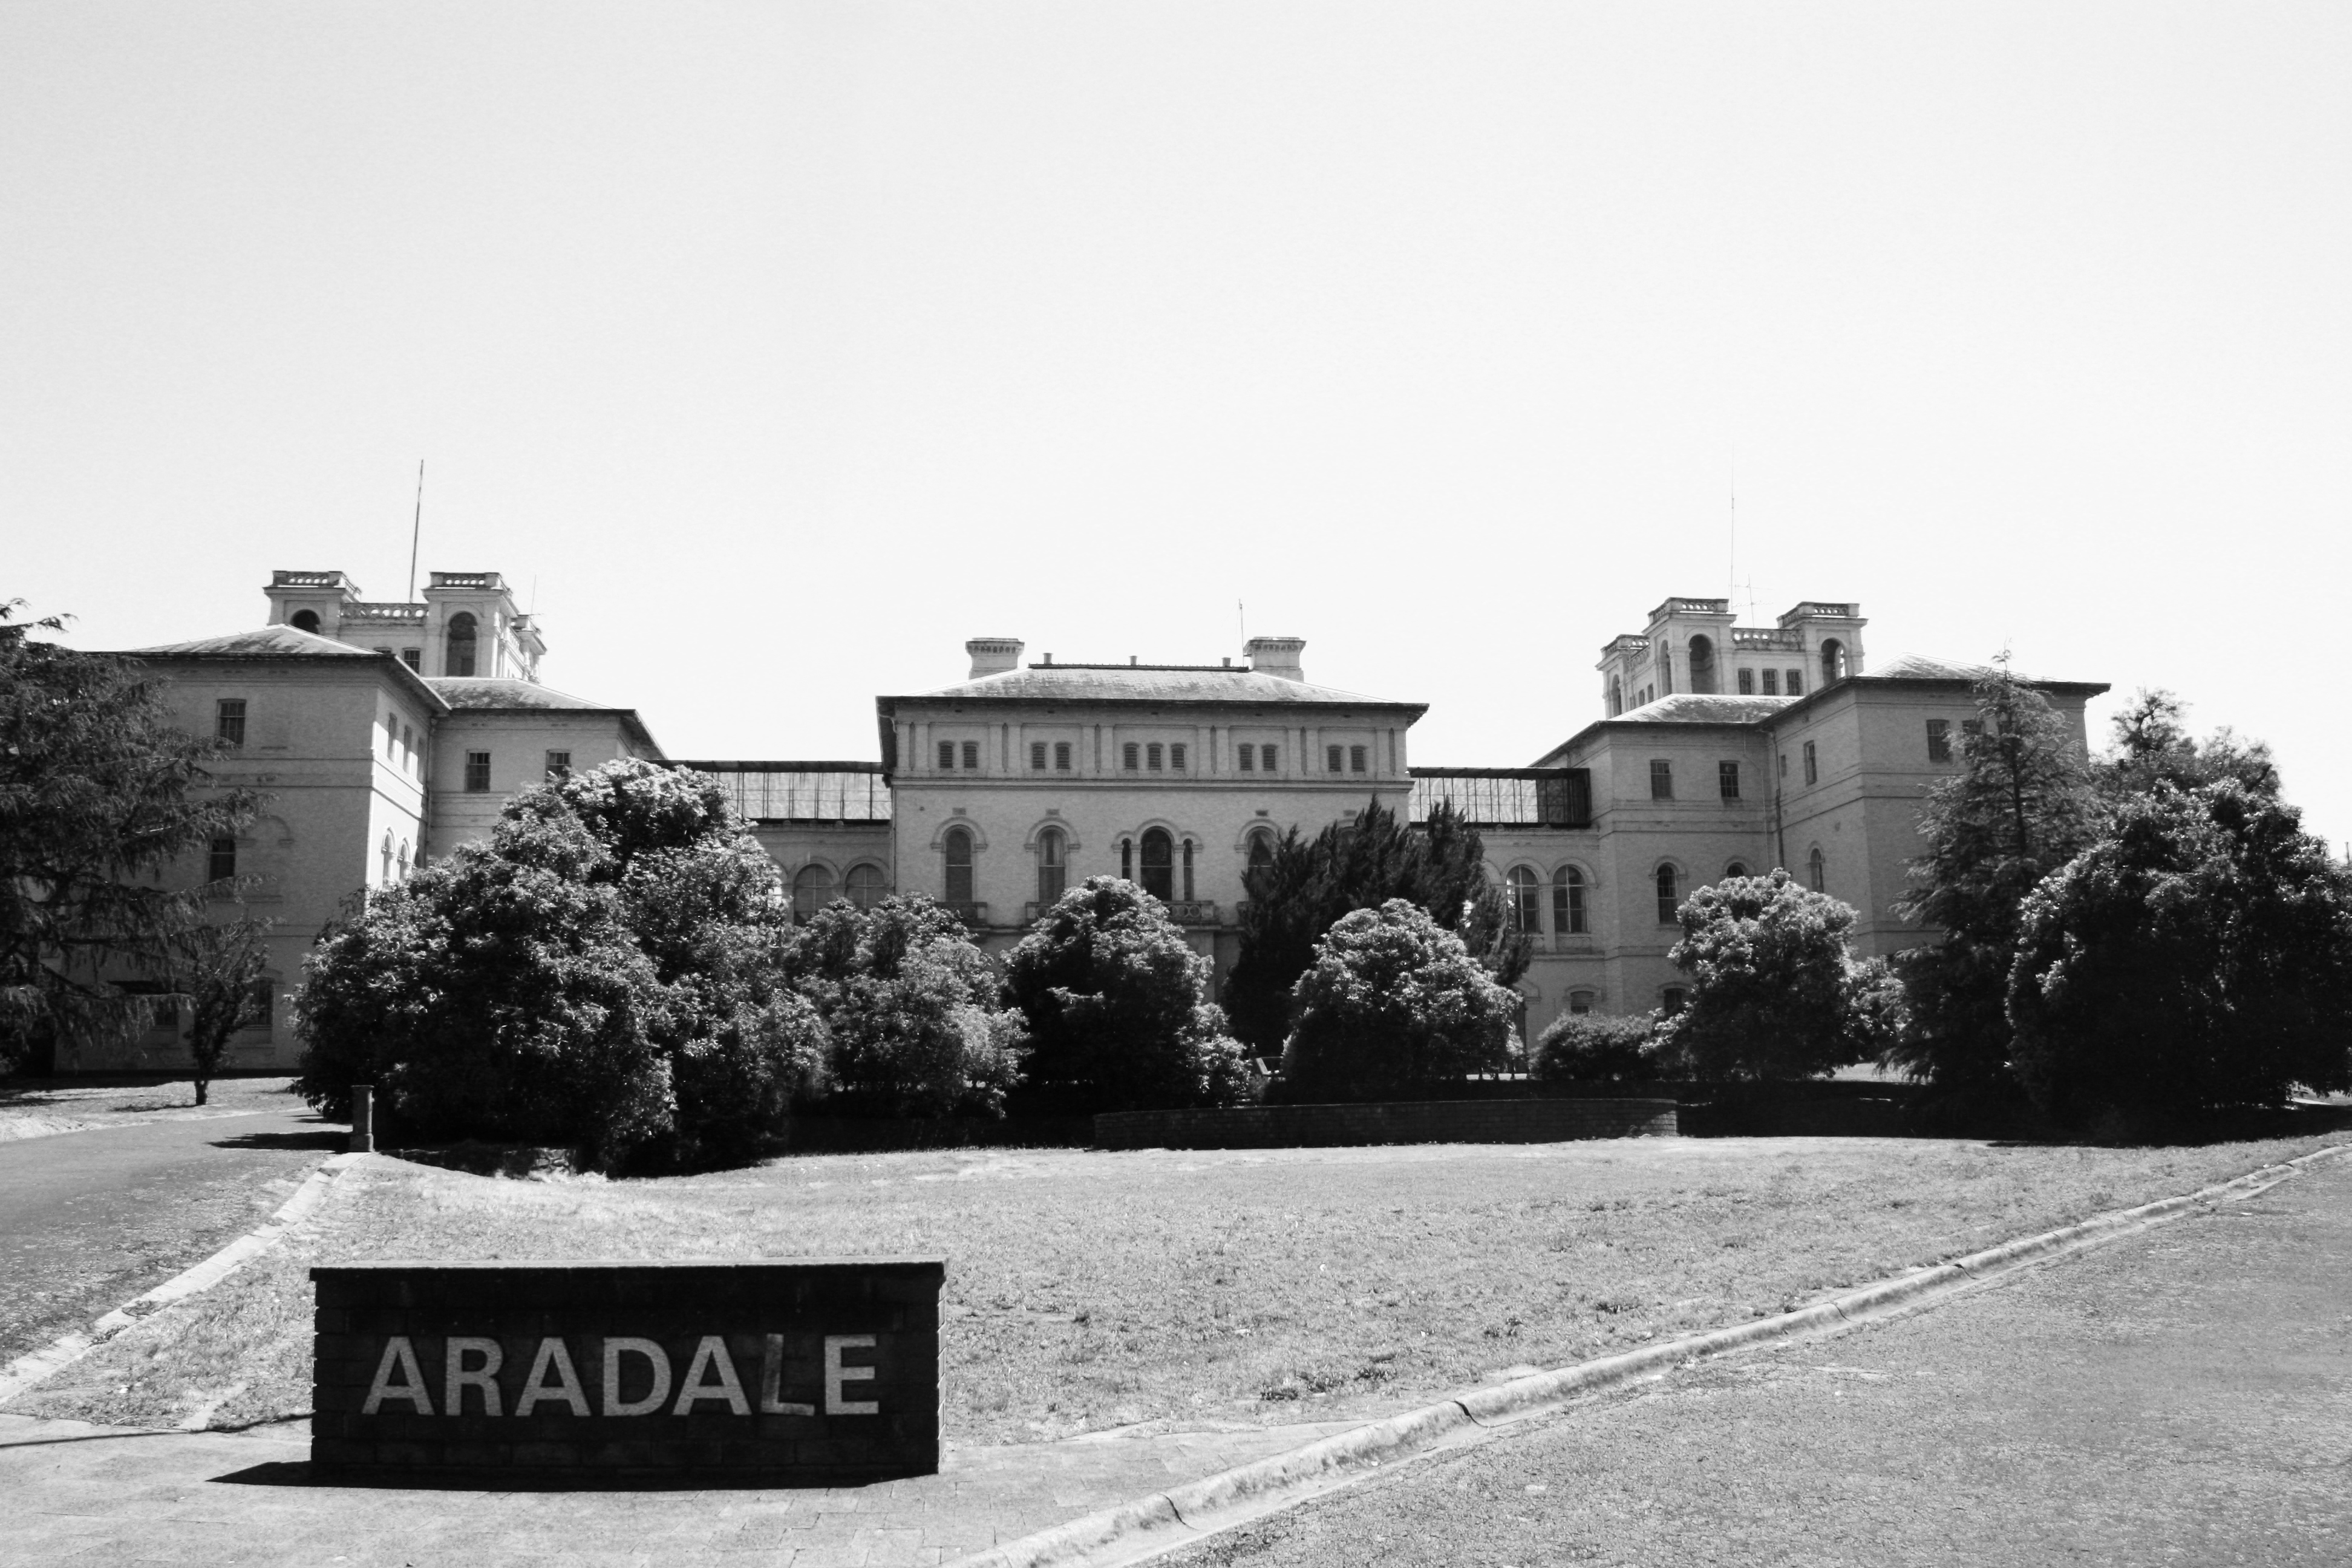 Aradale to mark its 150th anniversary